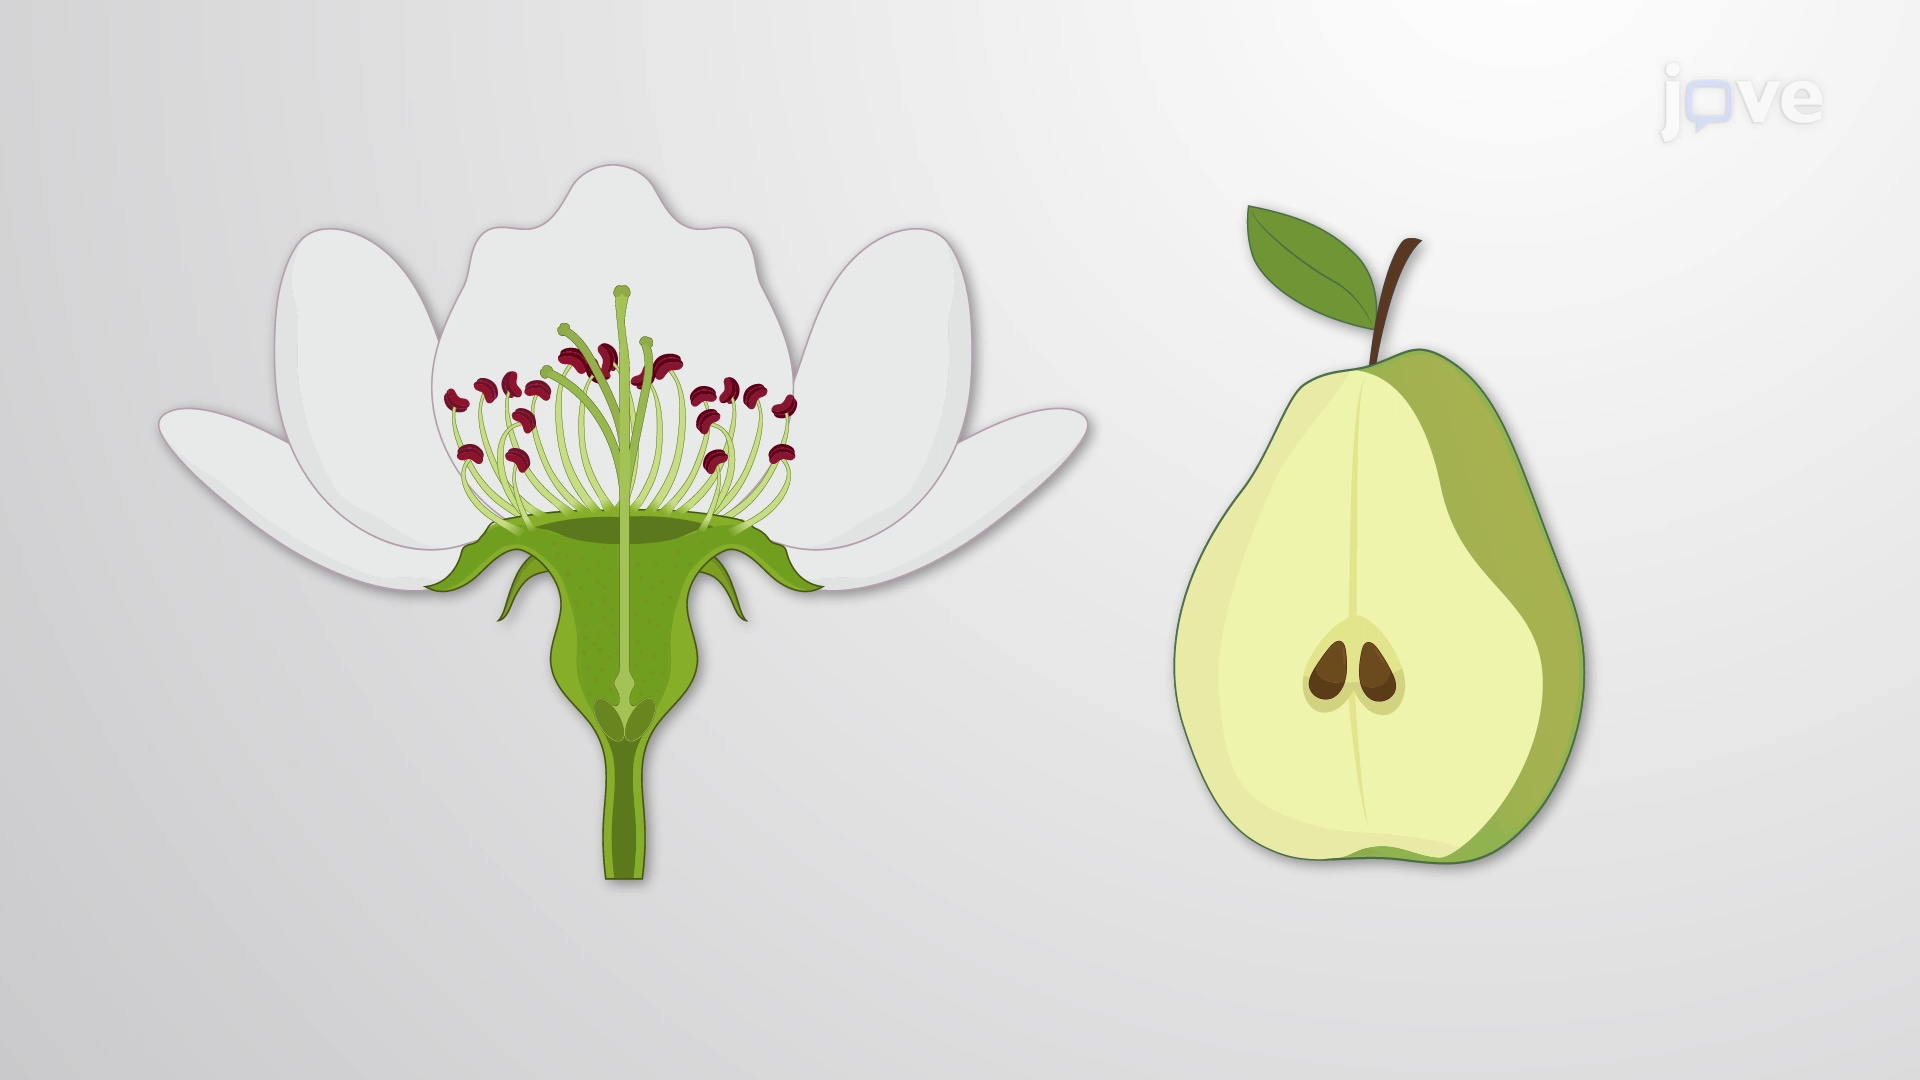 Fruit Development, Structure, and Function